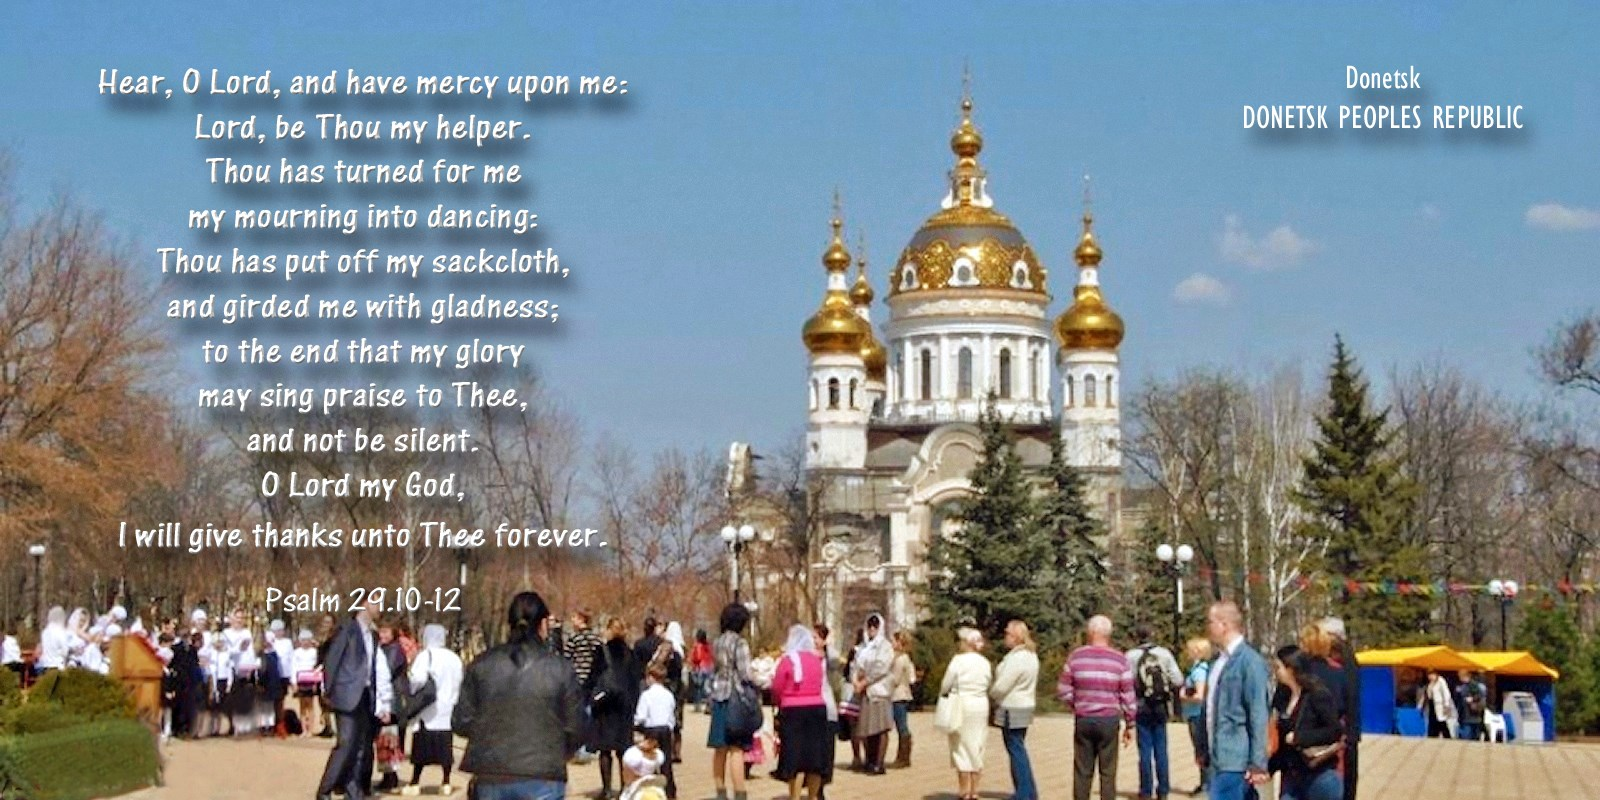 00 church. donetsk. dnr. psalm 29. 010715.jpg